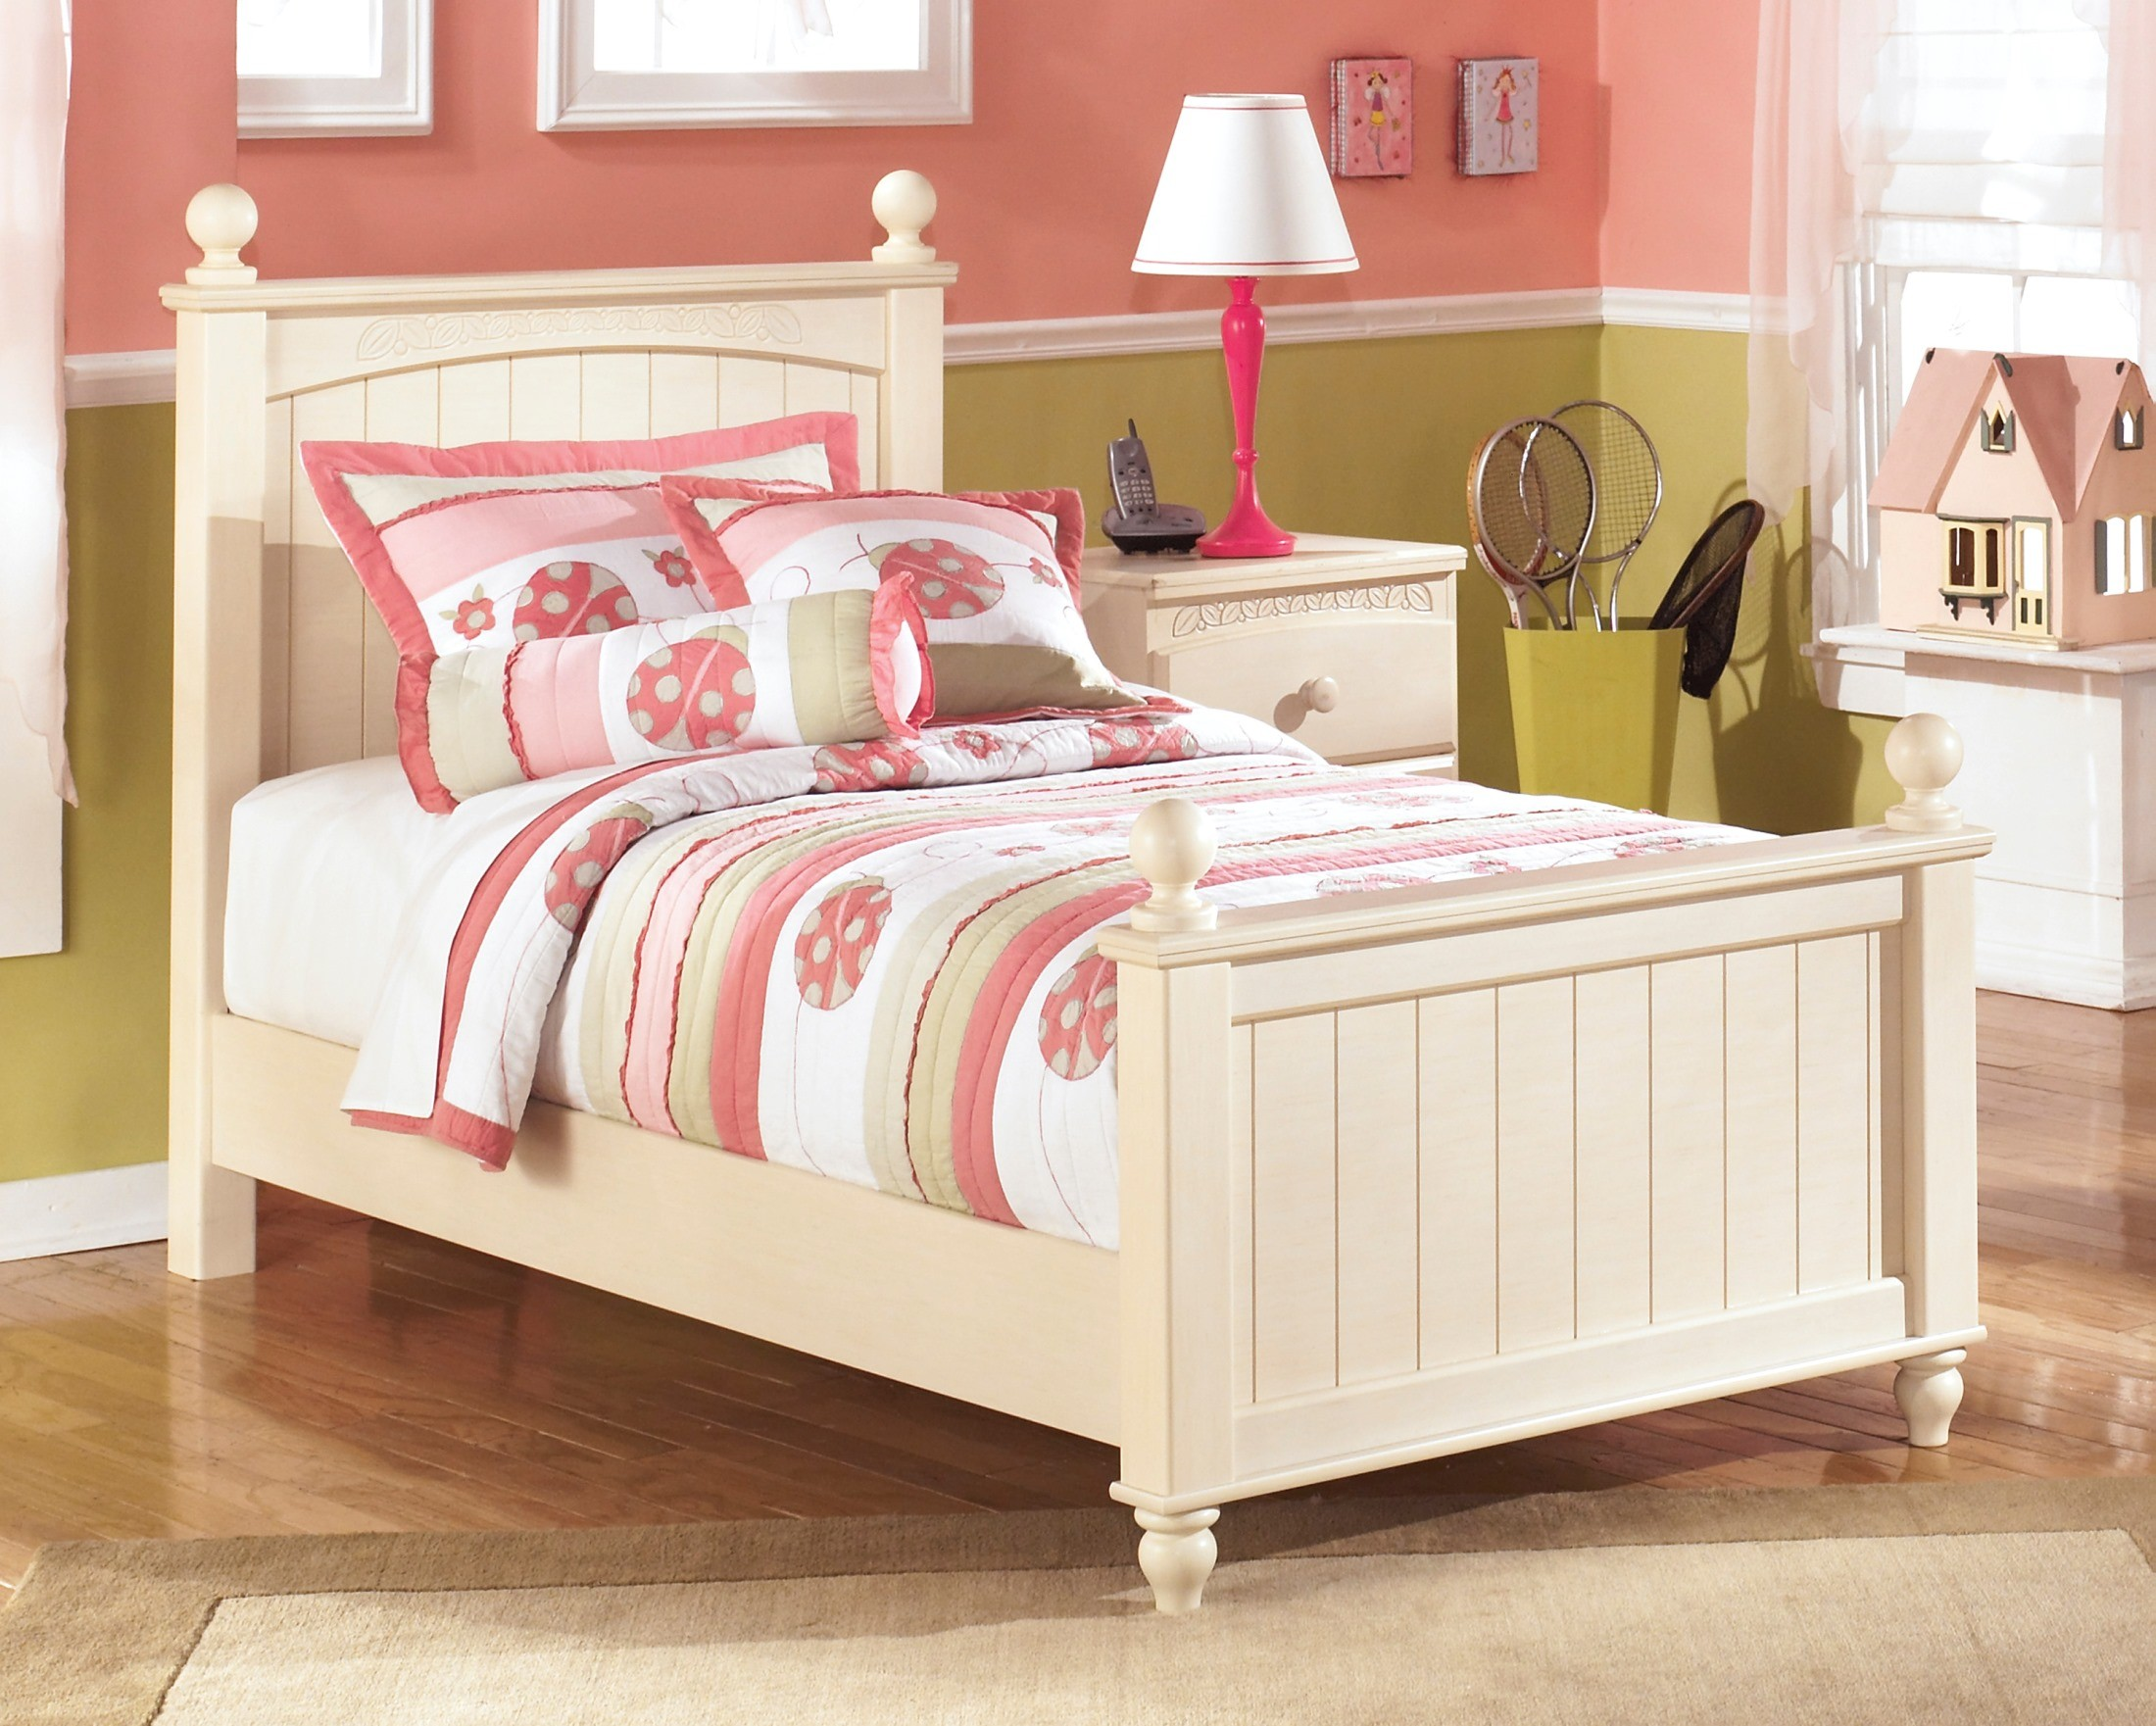 Cottage retreat youth poster bedroom set from ashley b213 51n 52n 83n coleman furniture Cottage retreat bedroom set